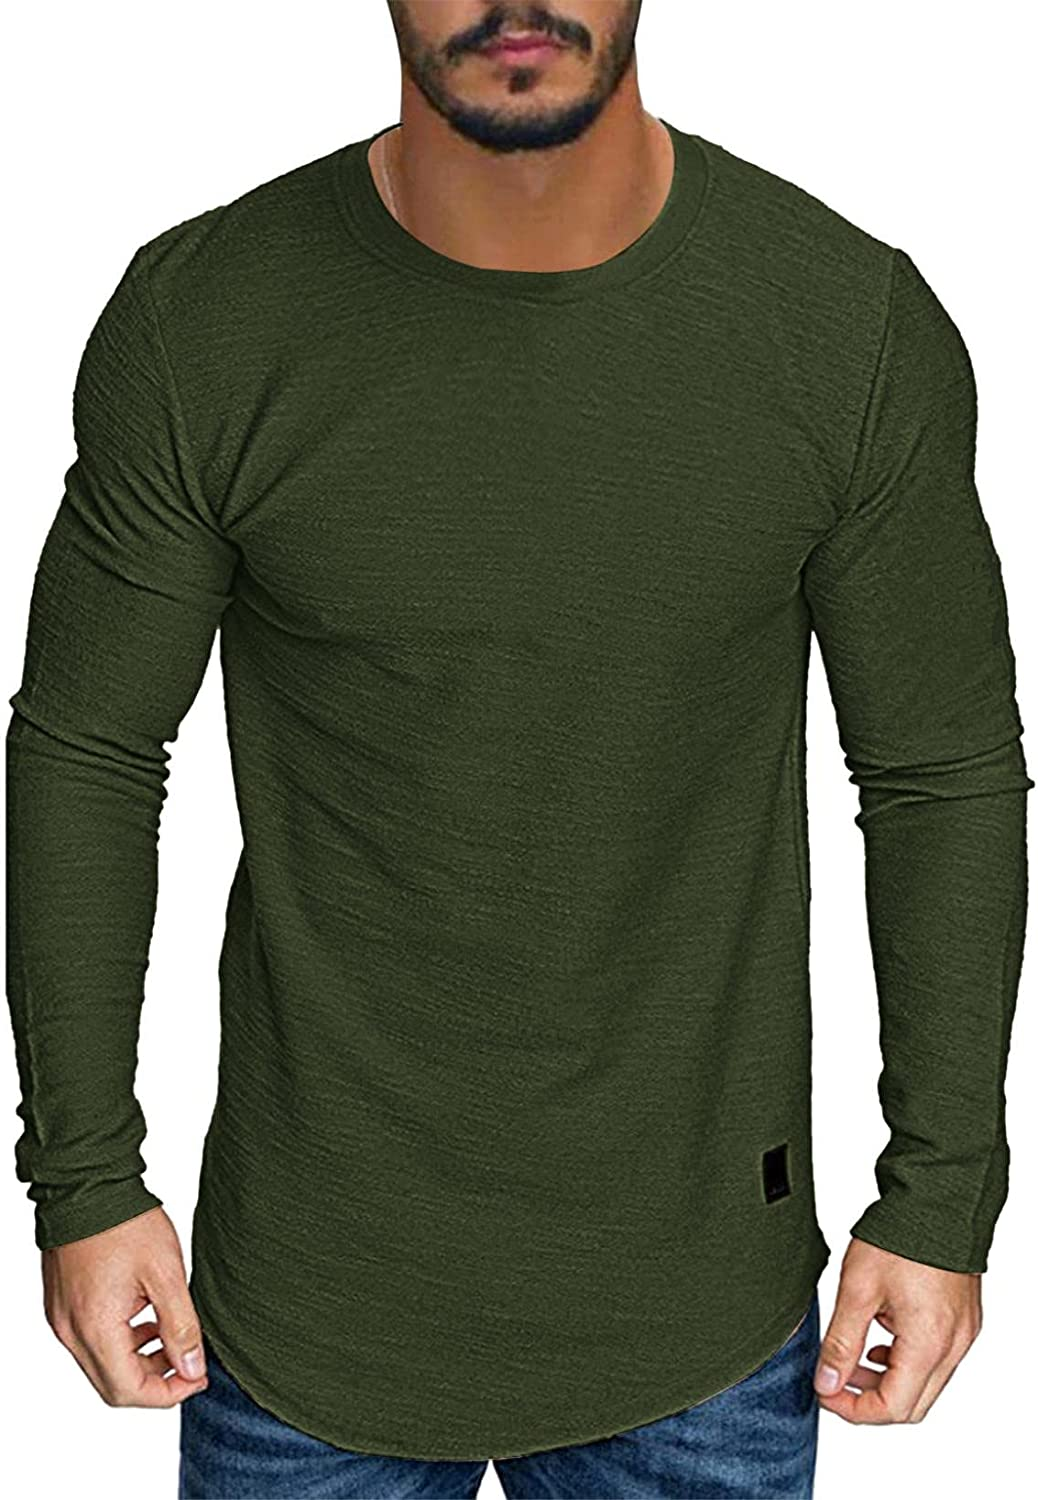 Huangse Mens Solid Color Extended Curved Hem Pullover Hipster Hip Hop Swag Top Blouse Long Sleeve Round Neck Tee Shirt